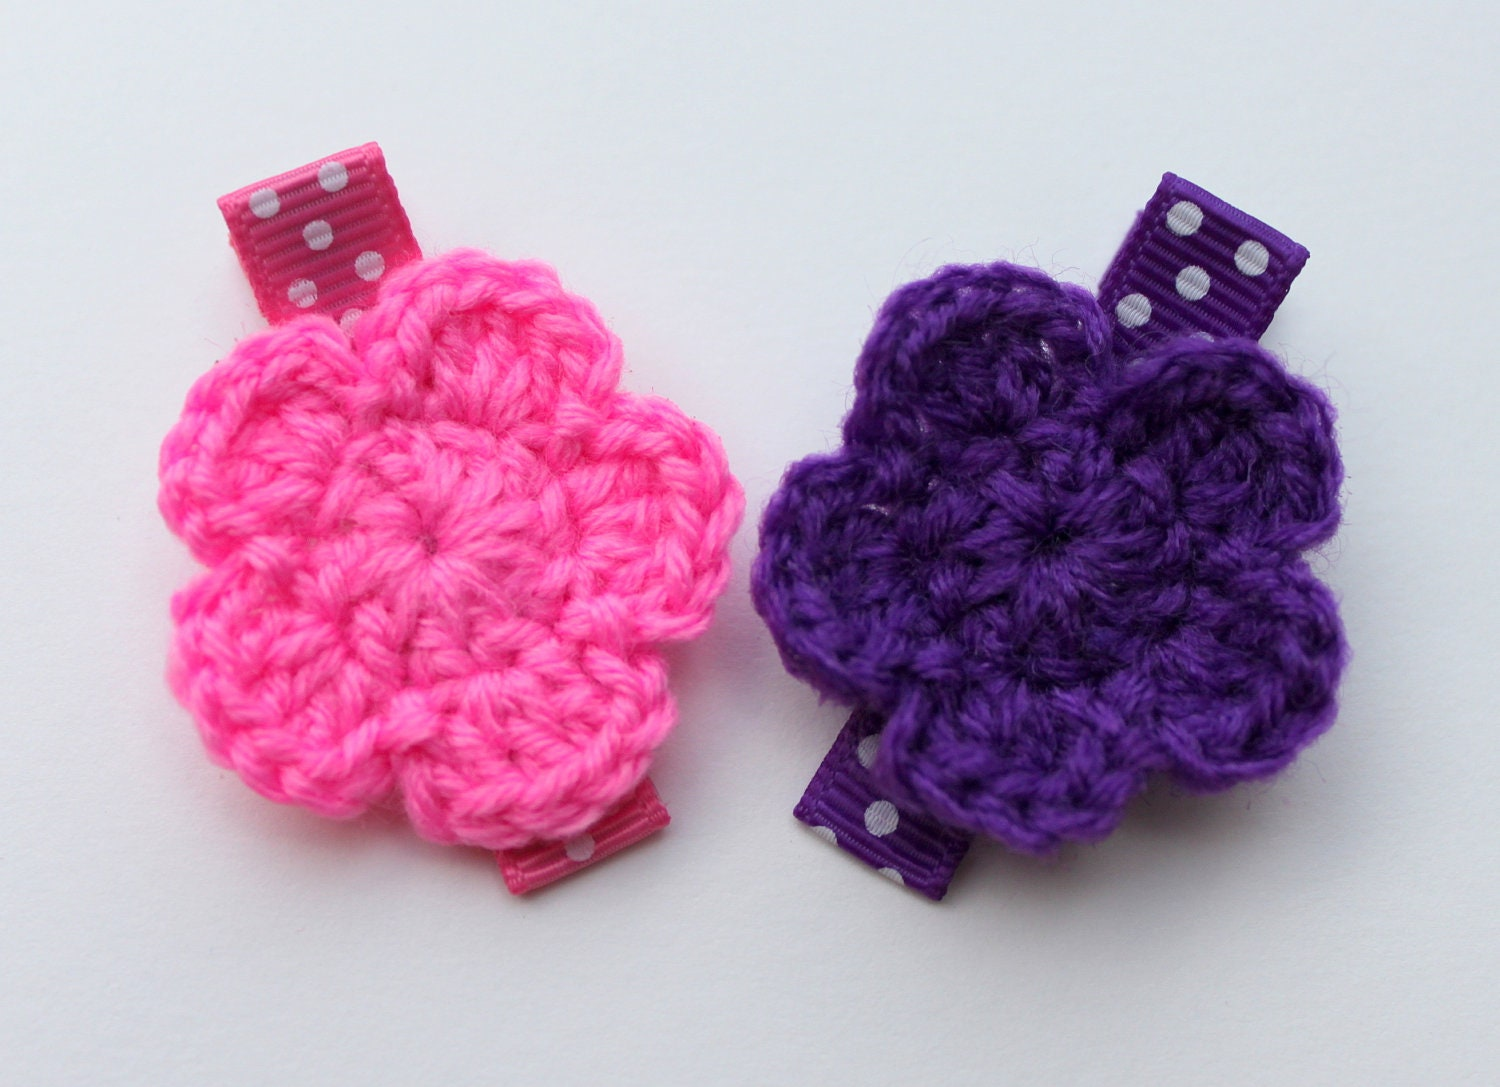 Crochet Hair Clips : Crochet Flower Hair Clips Purple and Hot Pink by PrincessGraceBow